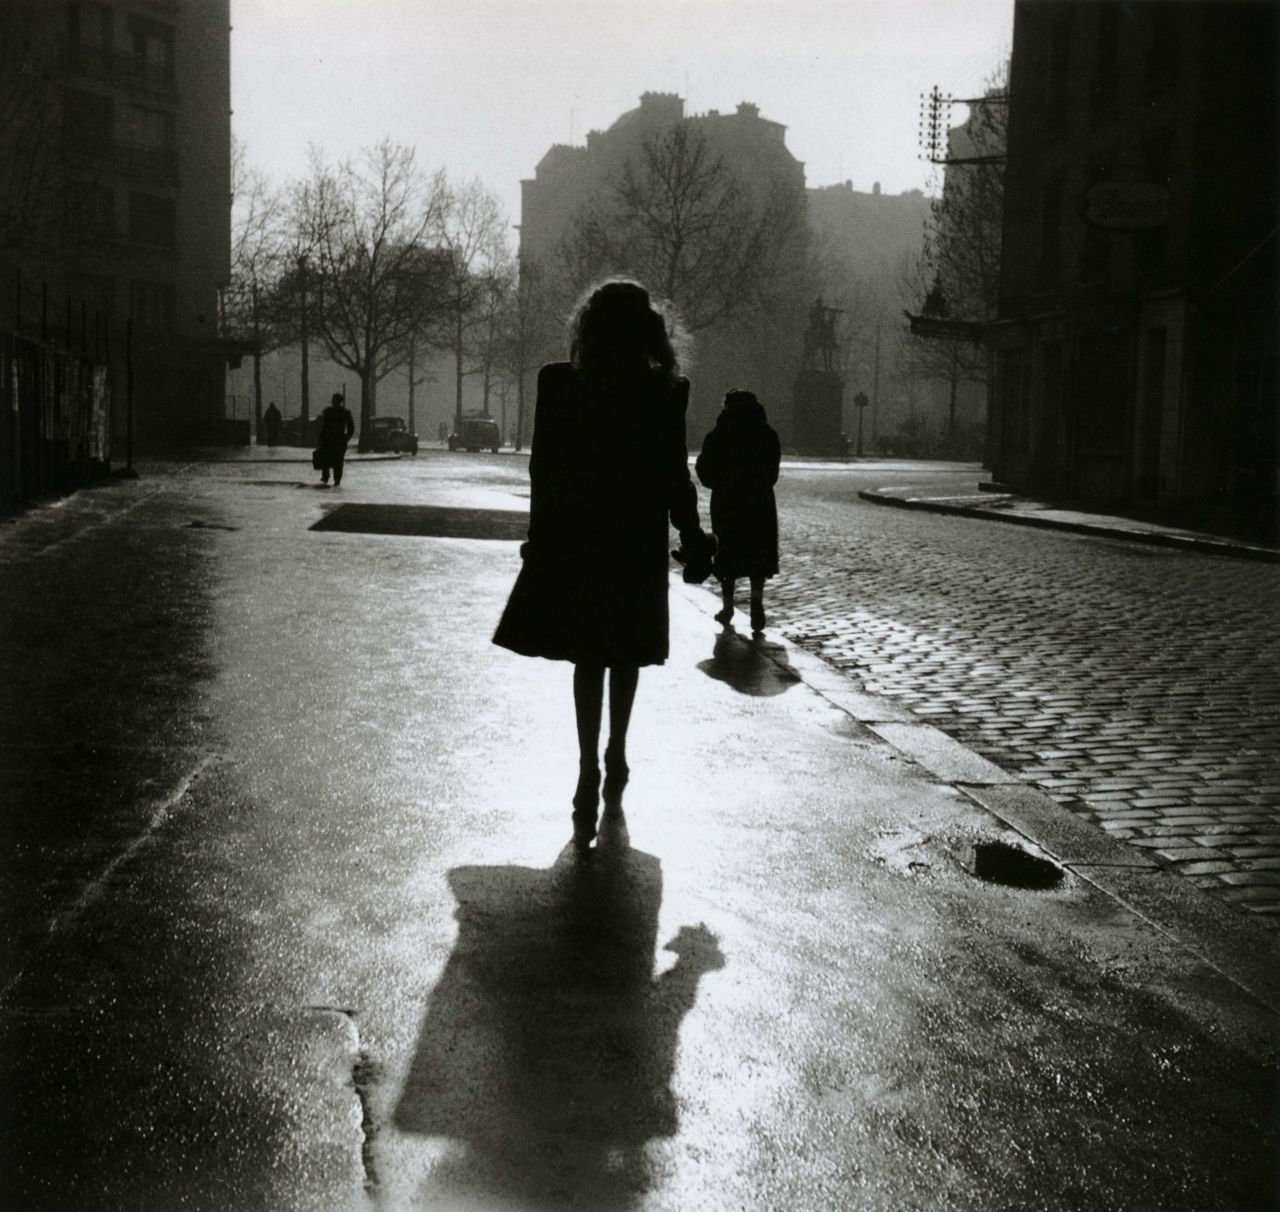 Édouard Boubat Paris, France, 1948 From Édouard Boubat: A Gentle Eye